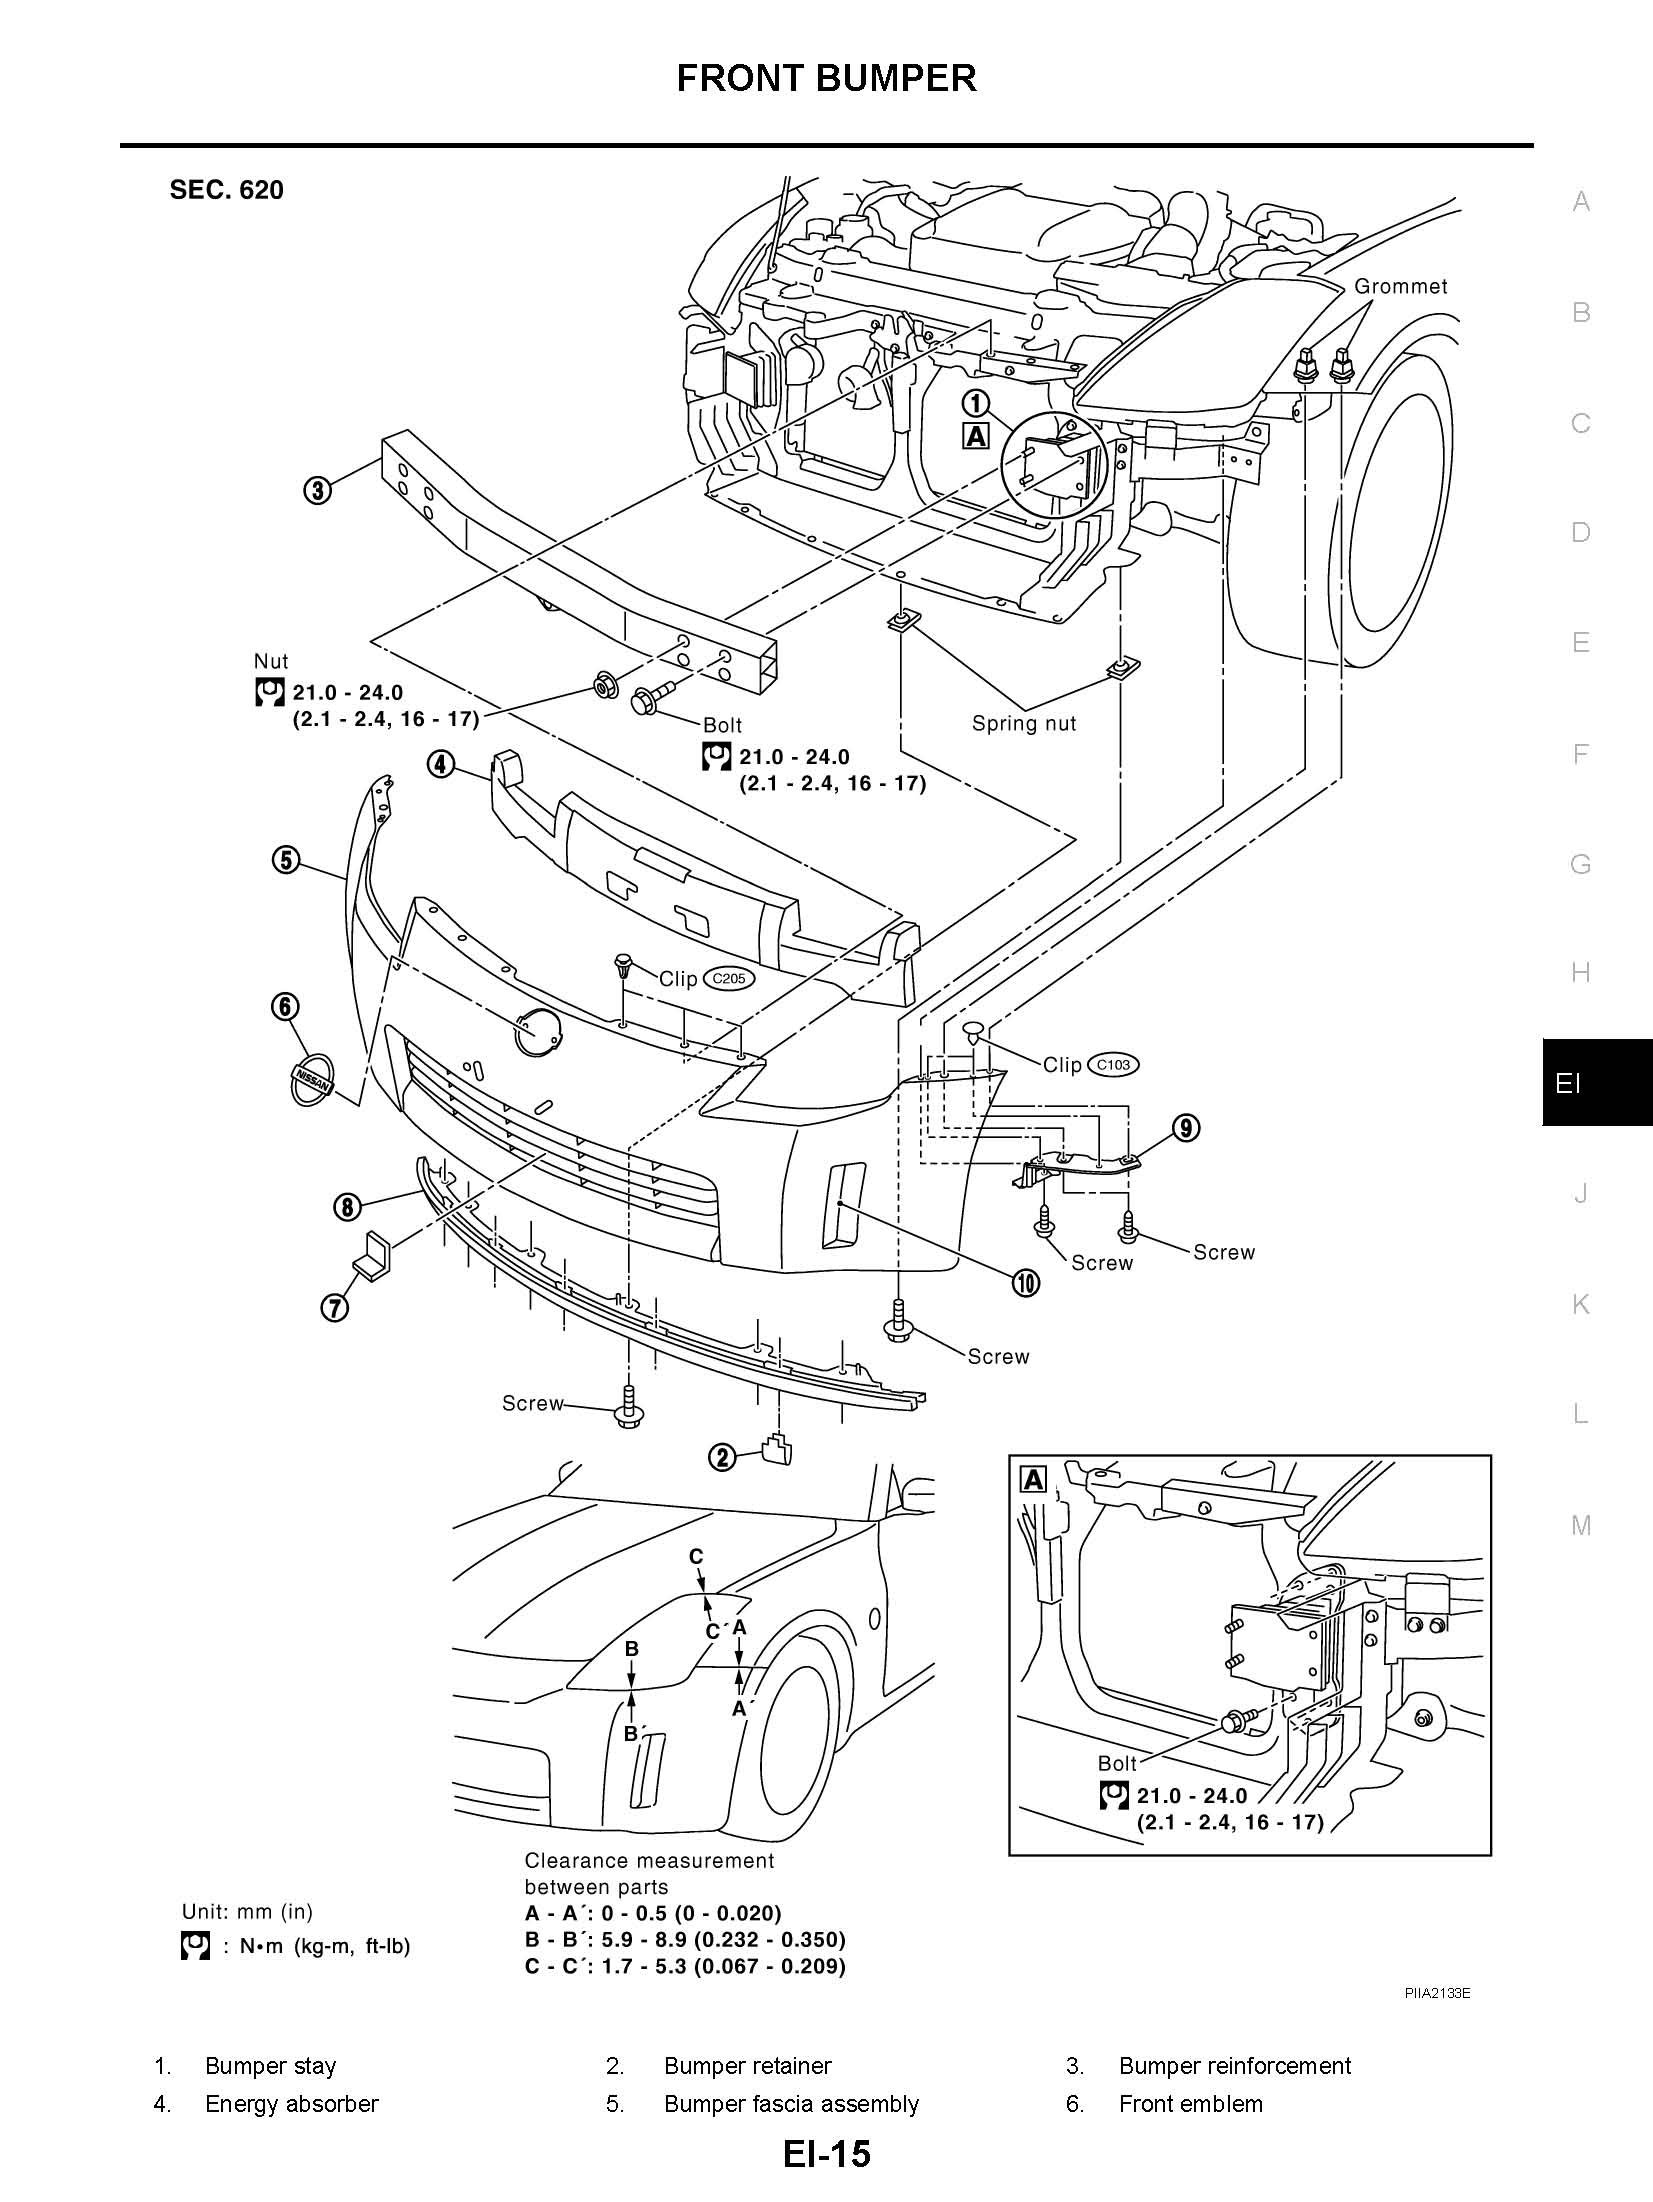 2014 Nissan Altima Front End Diagram Nissan Recomended Car